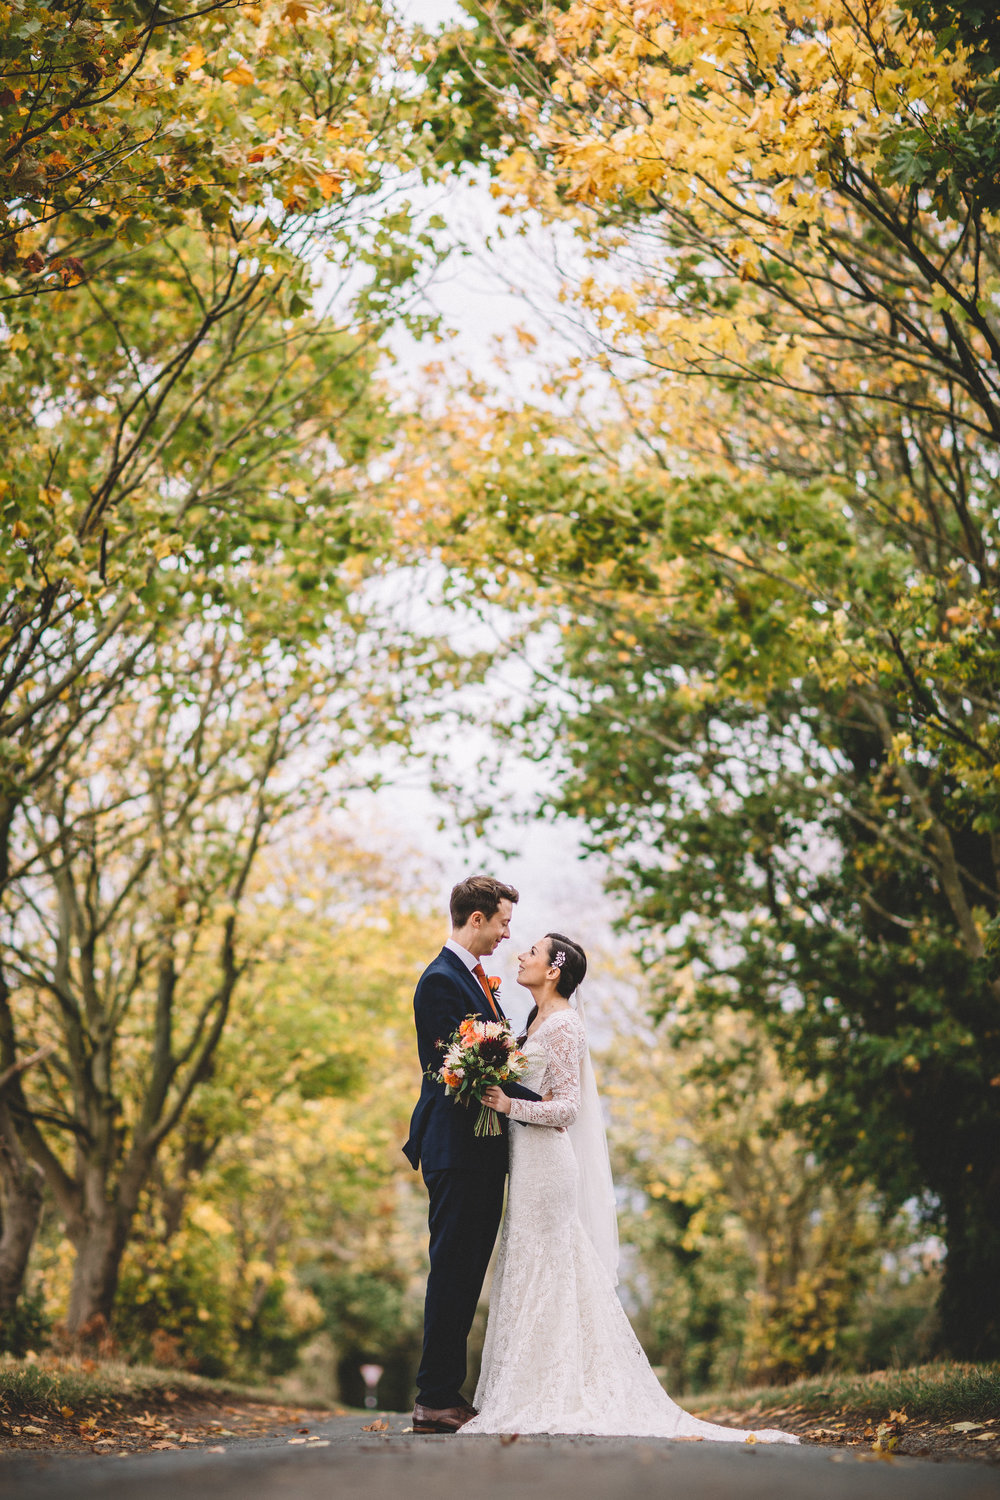 Rachel & Andrew by Lumiere - an embrace amid the autumn hues.jpg